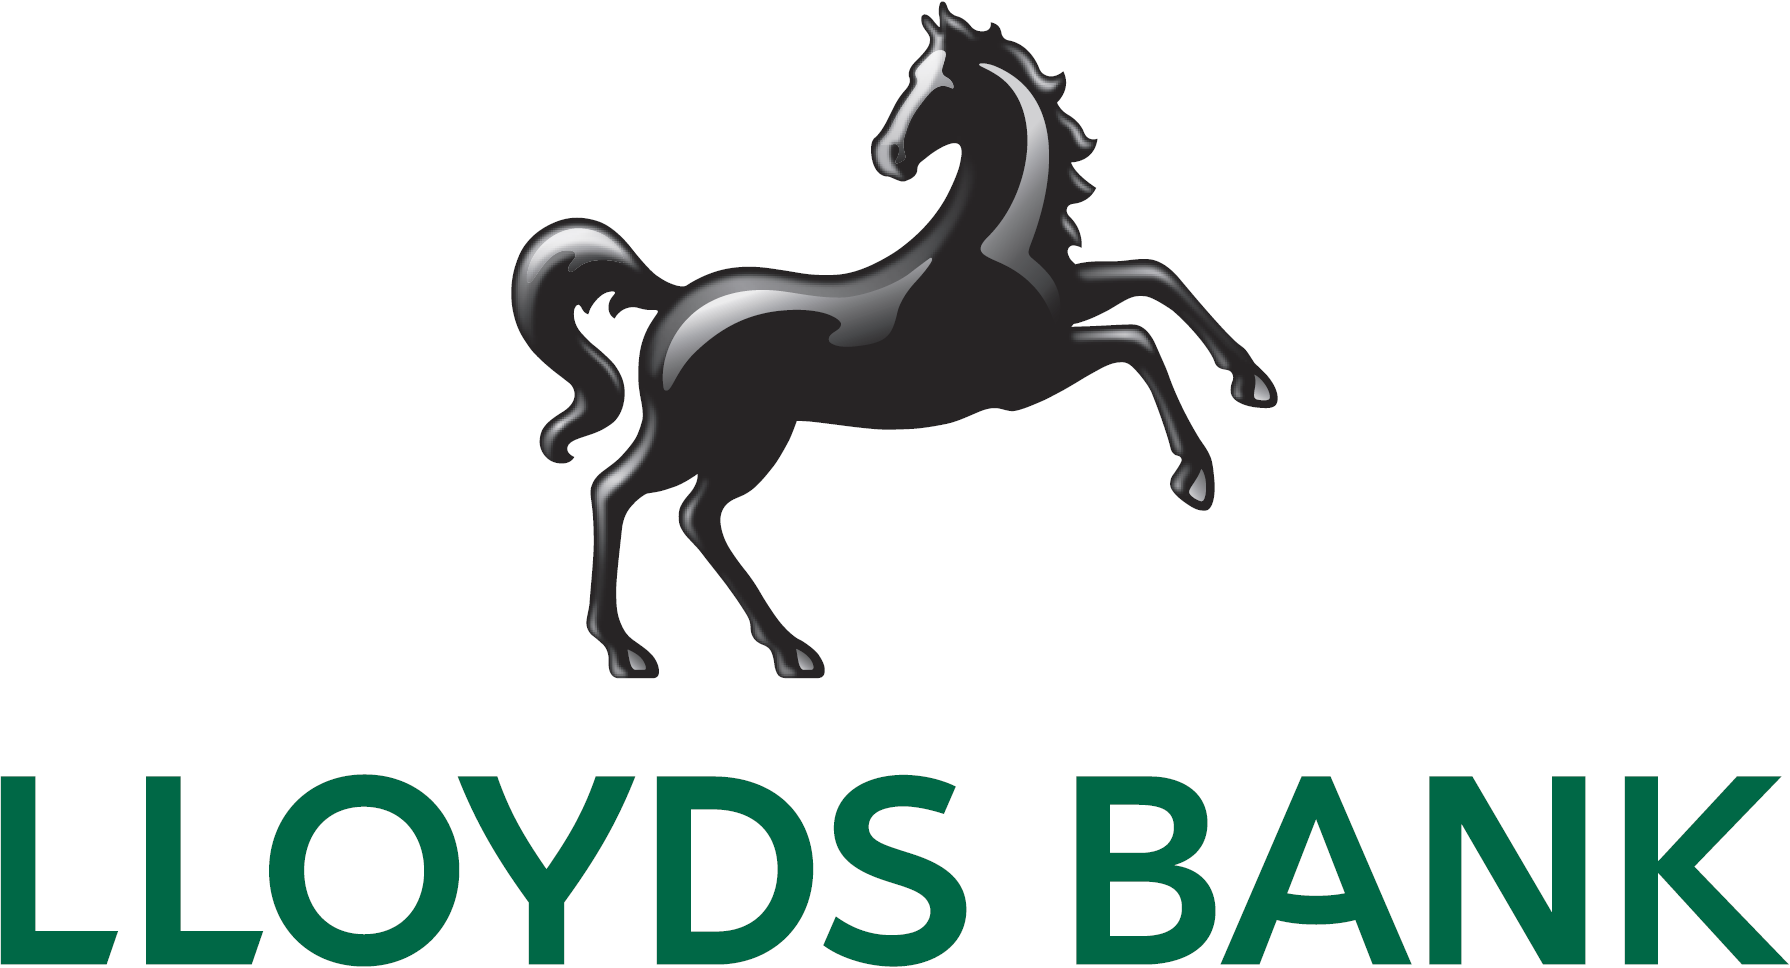 Lloyds bank loans in depth info reviews choose wisely lloyds bank loans reheart Image collections